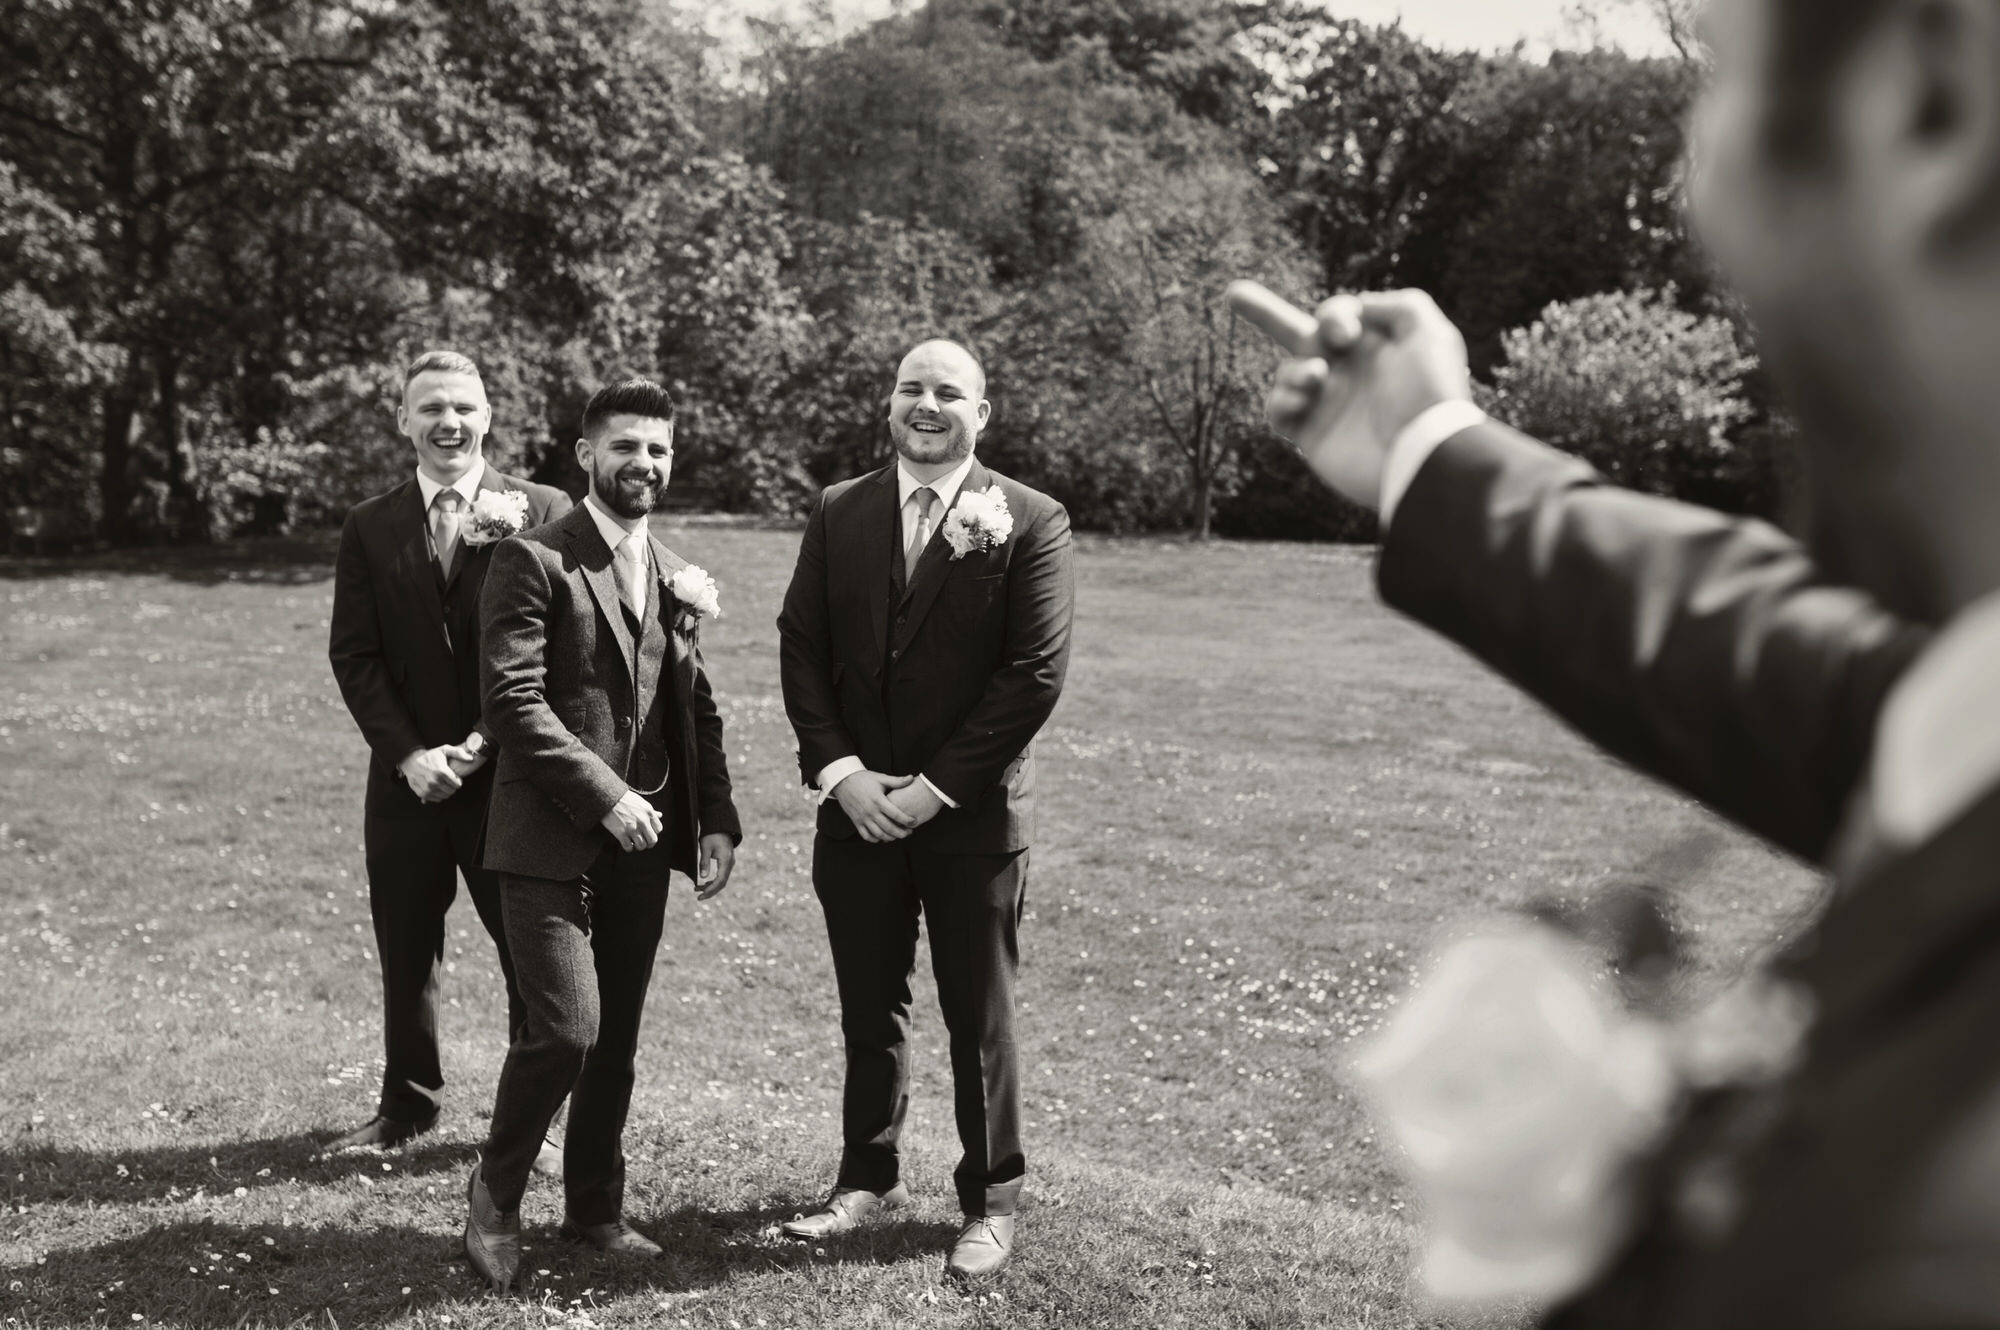 Bryngarw House  in Bridgend - Just a groomsmen casually flicking the bird at the groom Nick!